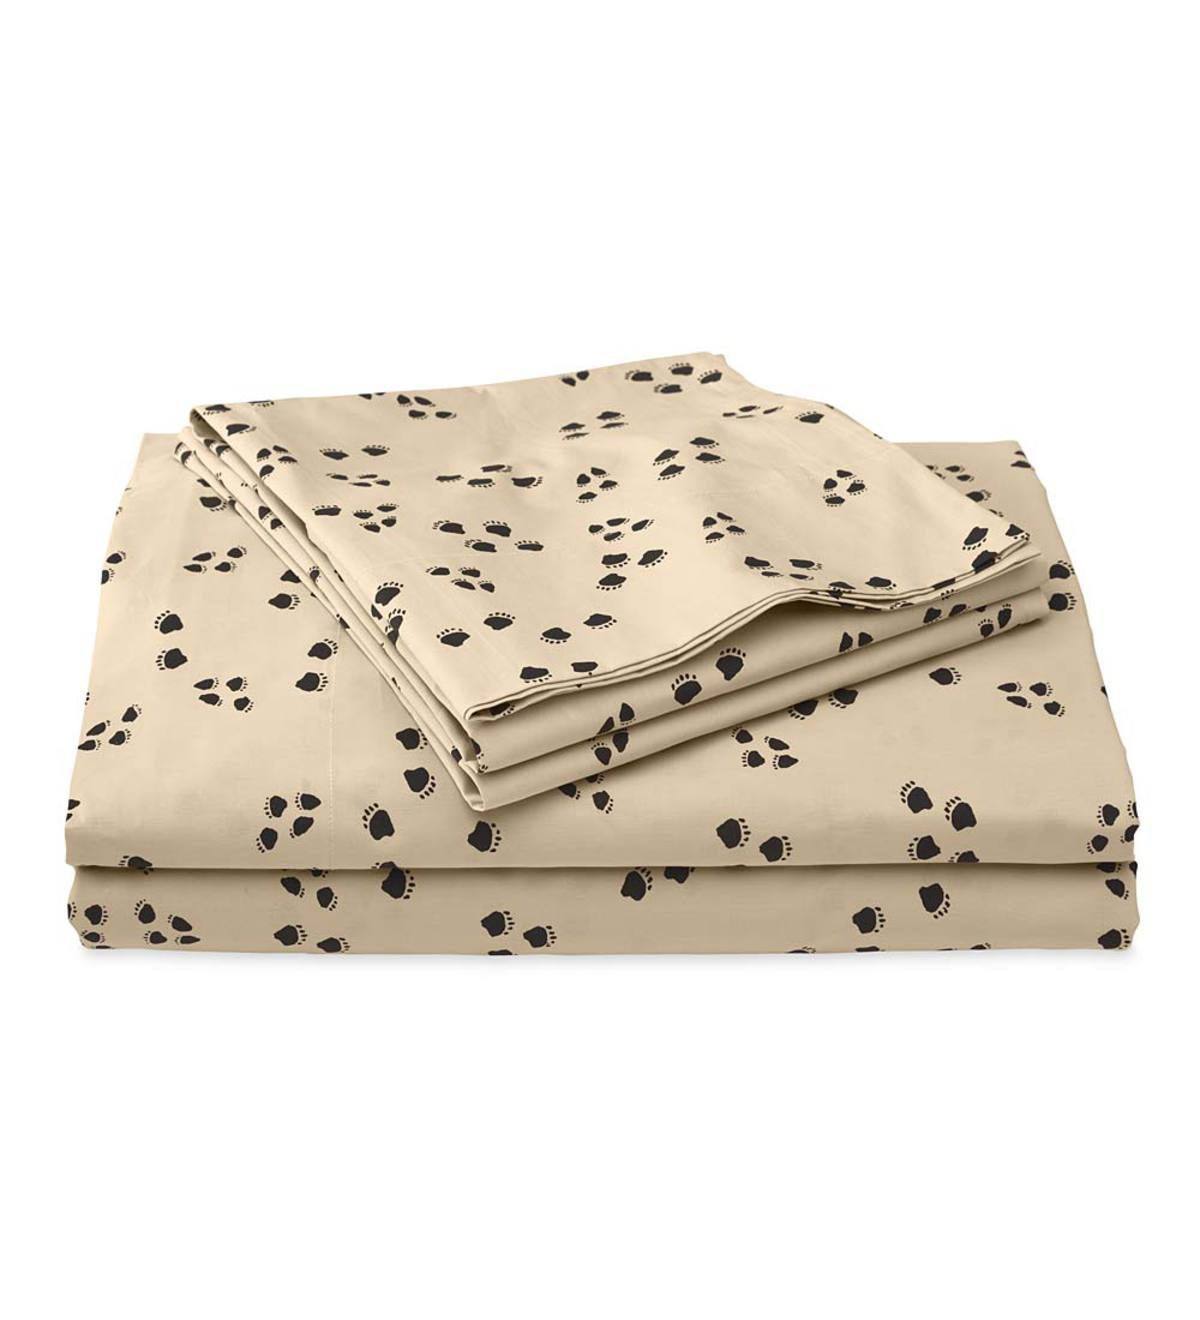 Twin Paw Print Cotton Percale Sheet Set